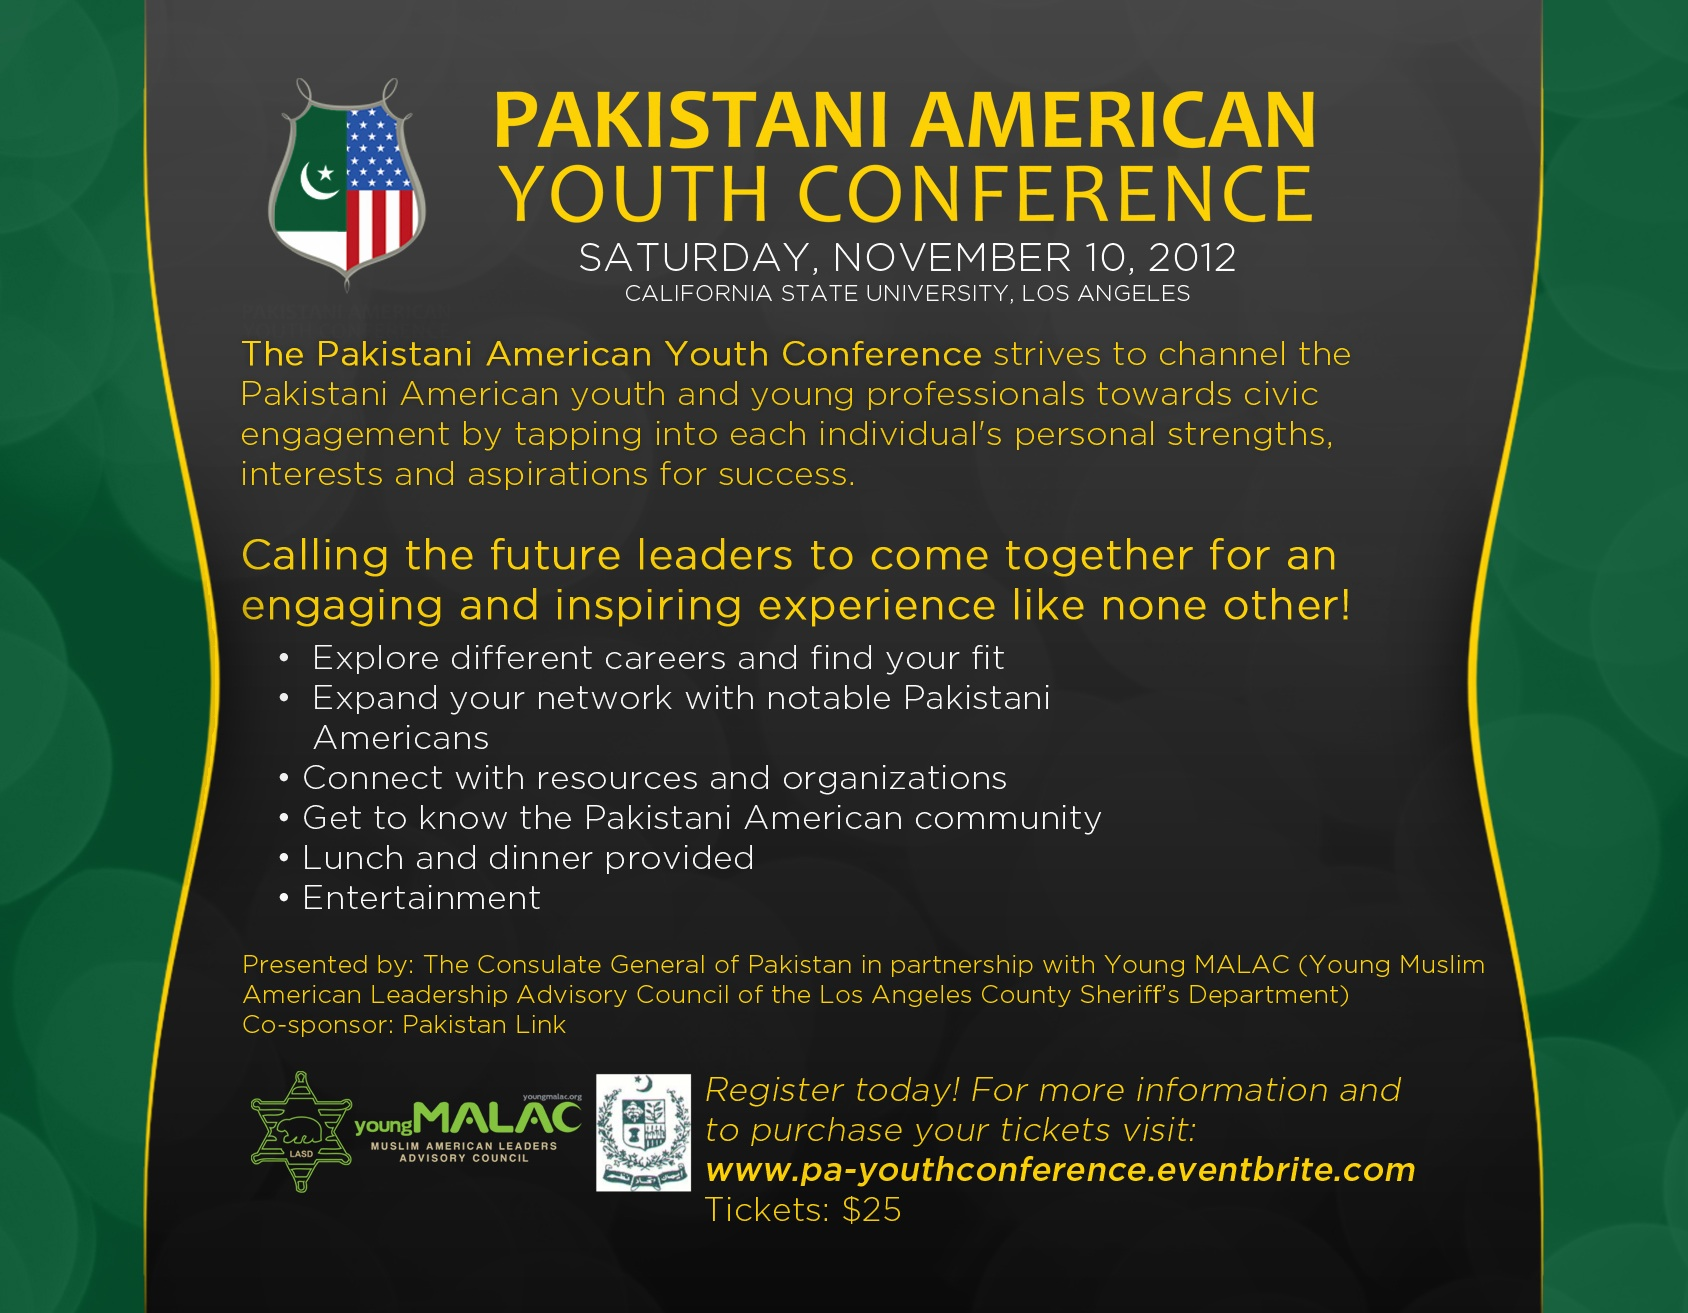 Pakistani American Youth Conference LA, CA, USA – Nov 10, 2012